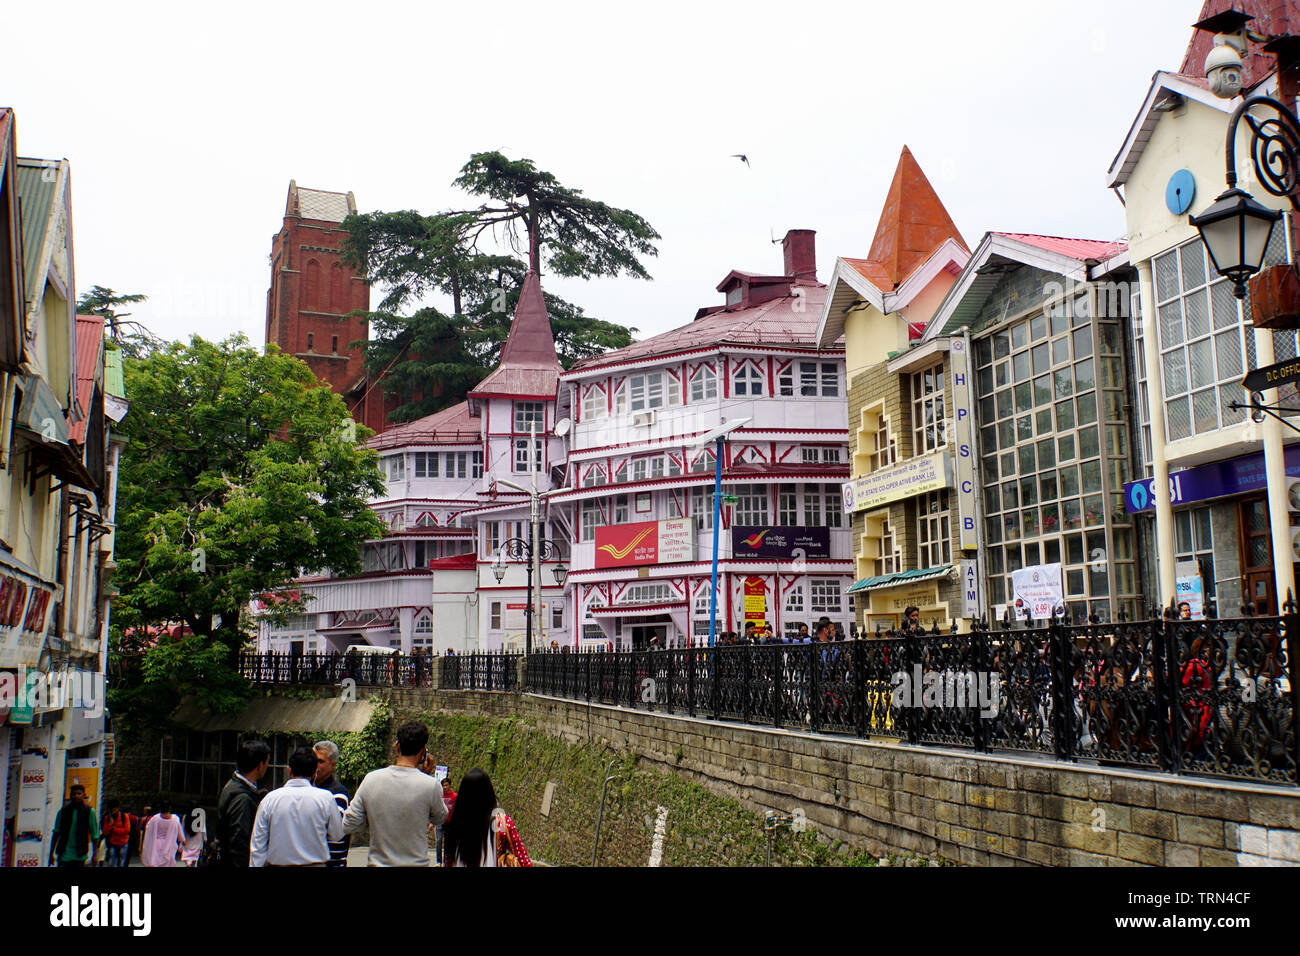 View from the Mall Road towards the Pink Central Post Office and Surrounding Buildings - Stock Image